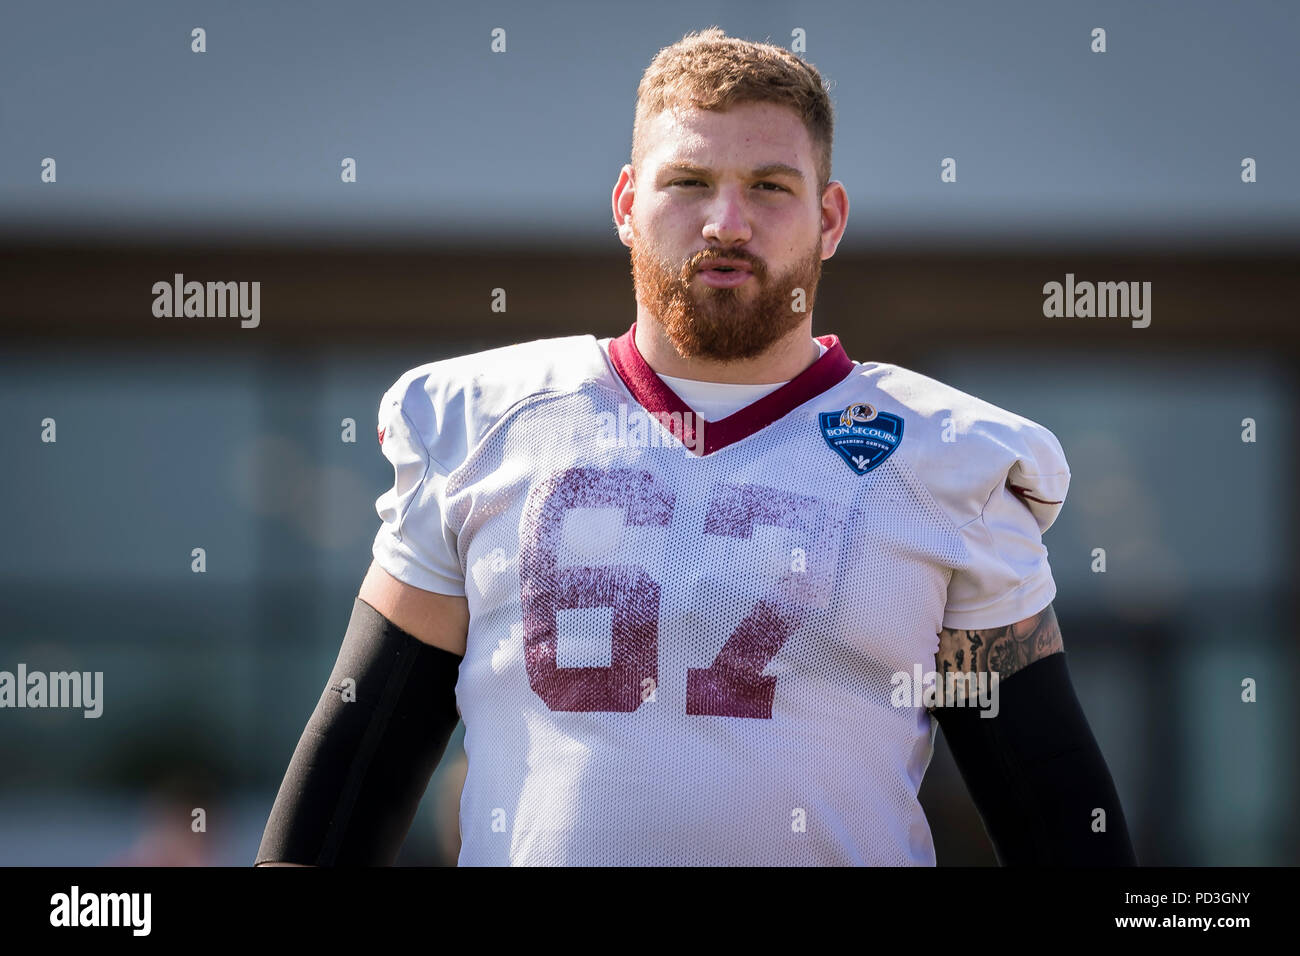 timeless design 59479 b10ad August 06, 2018: Washington Redskins offensive guard Kyle ...